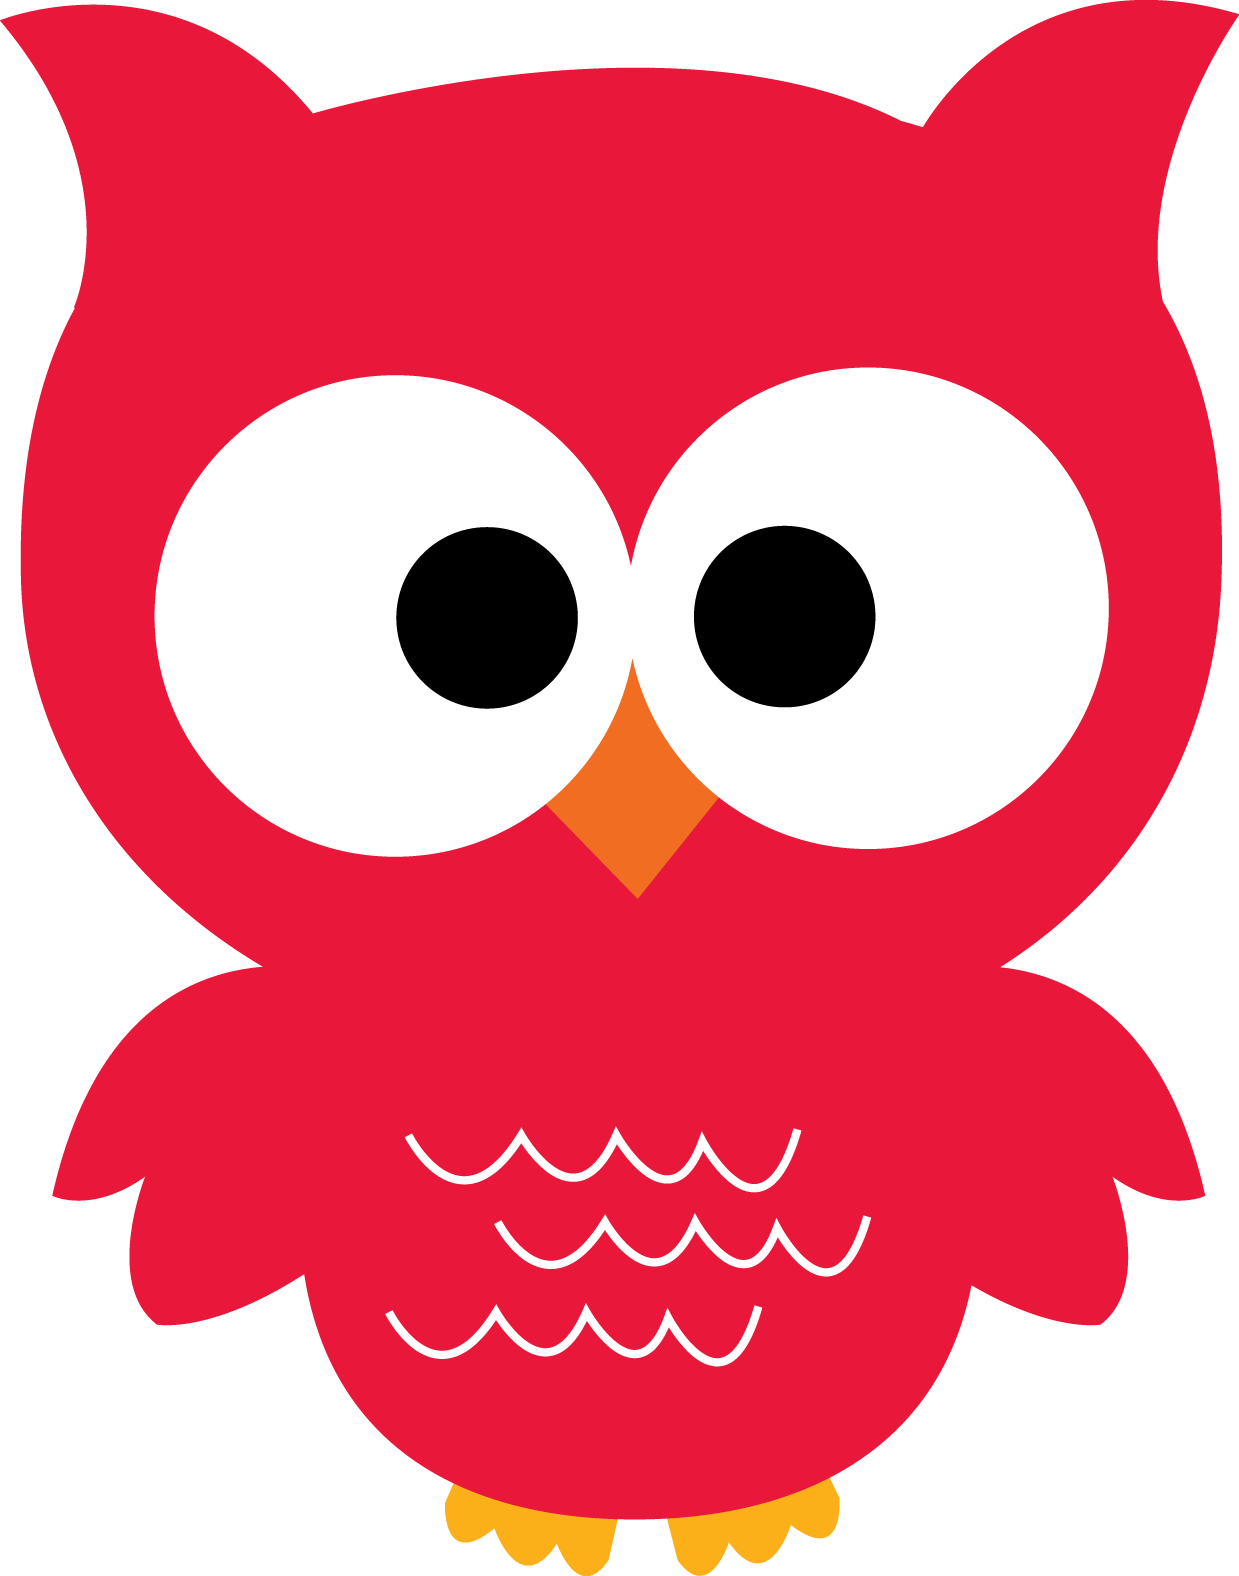 giggle and print 20 adorable owl printables ohh these are so cute so many colors to choose from too